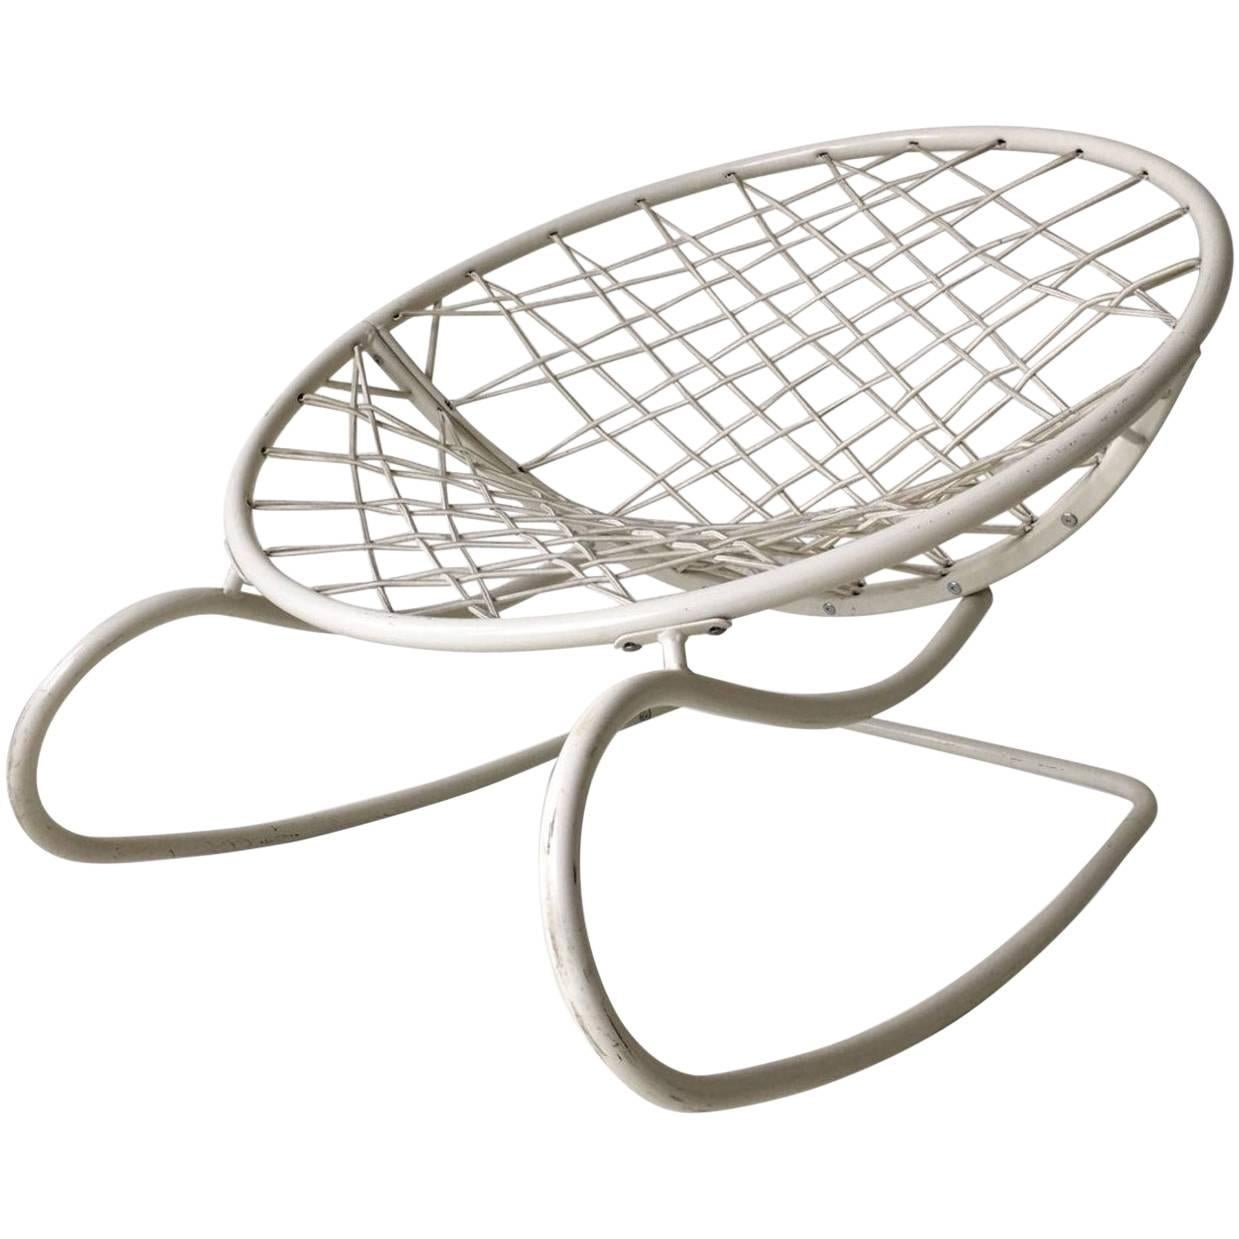 ikea metal chairs ebay chair covers white rocking lounge model axvall by niels gammelgaard 2002 for